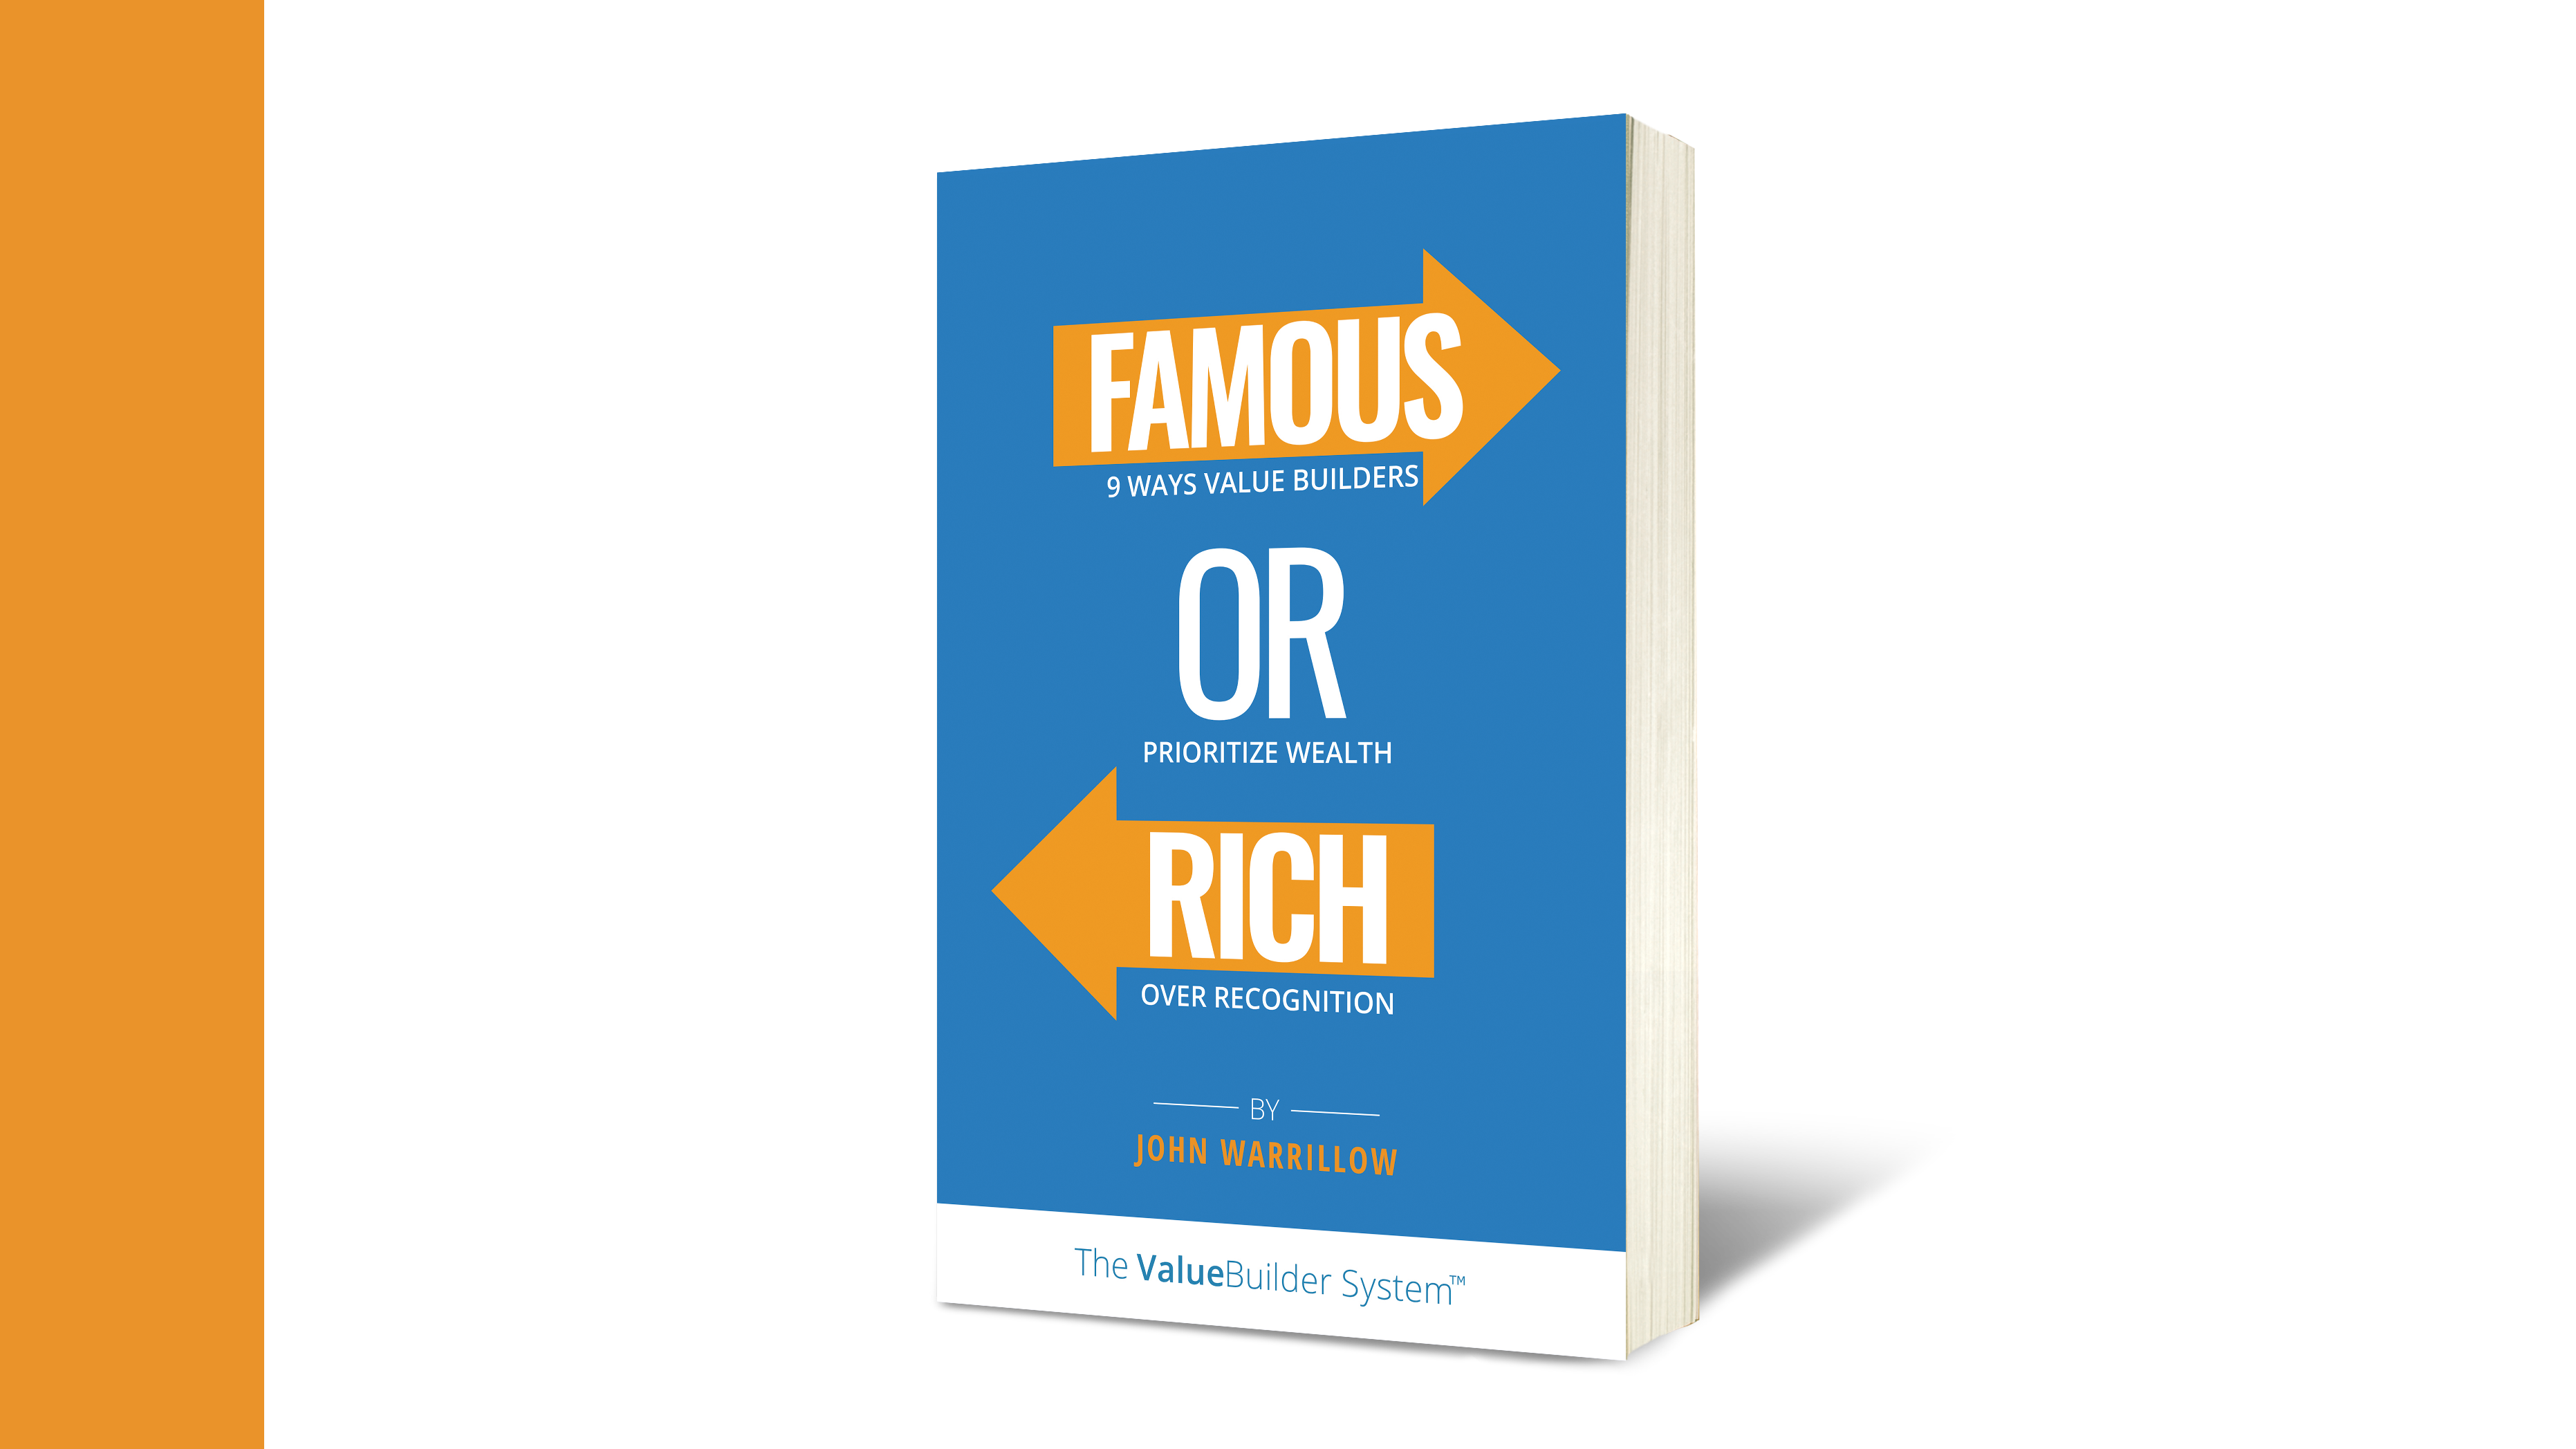 Famous Or Rich_book cover 3D